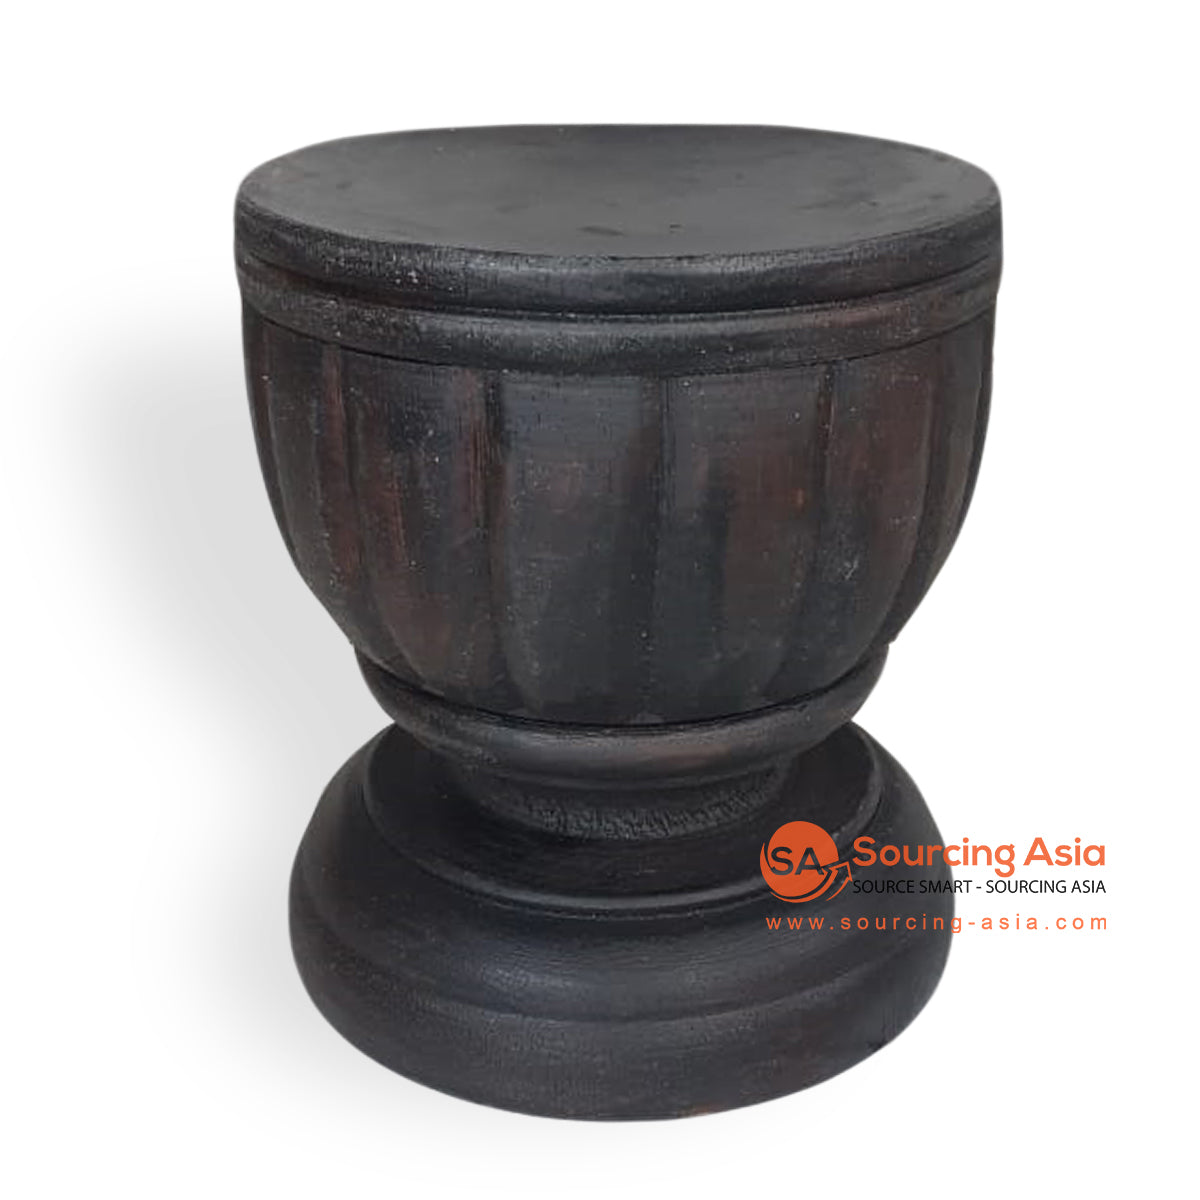 CHWD007-2 ALBESIA WOOD CANDLE HOLDER